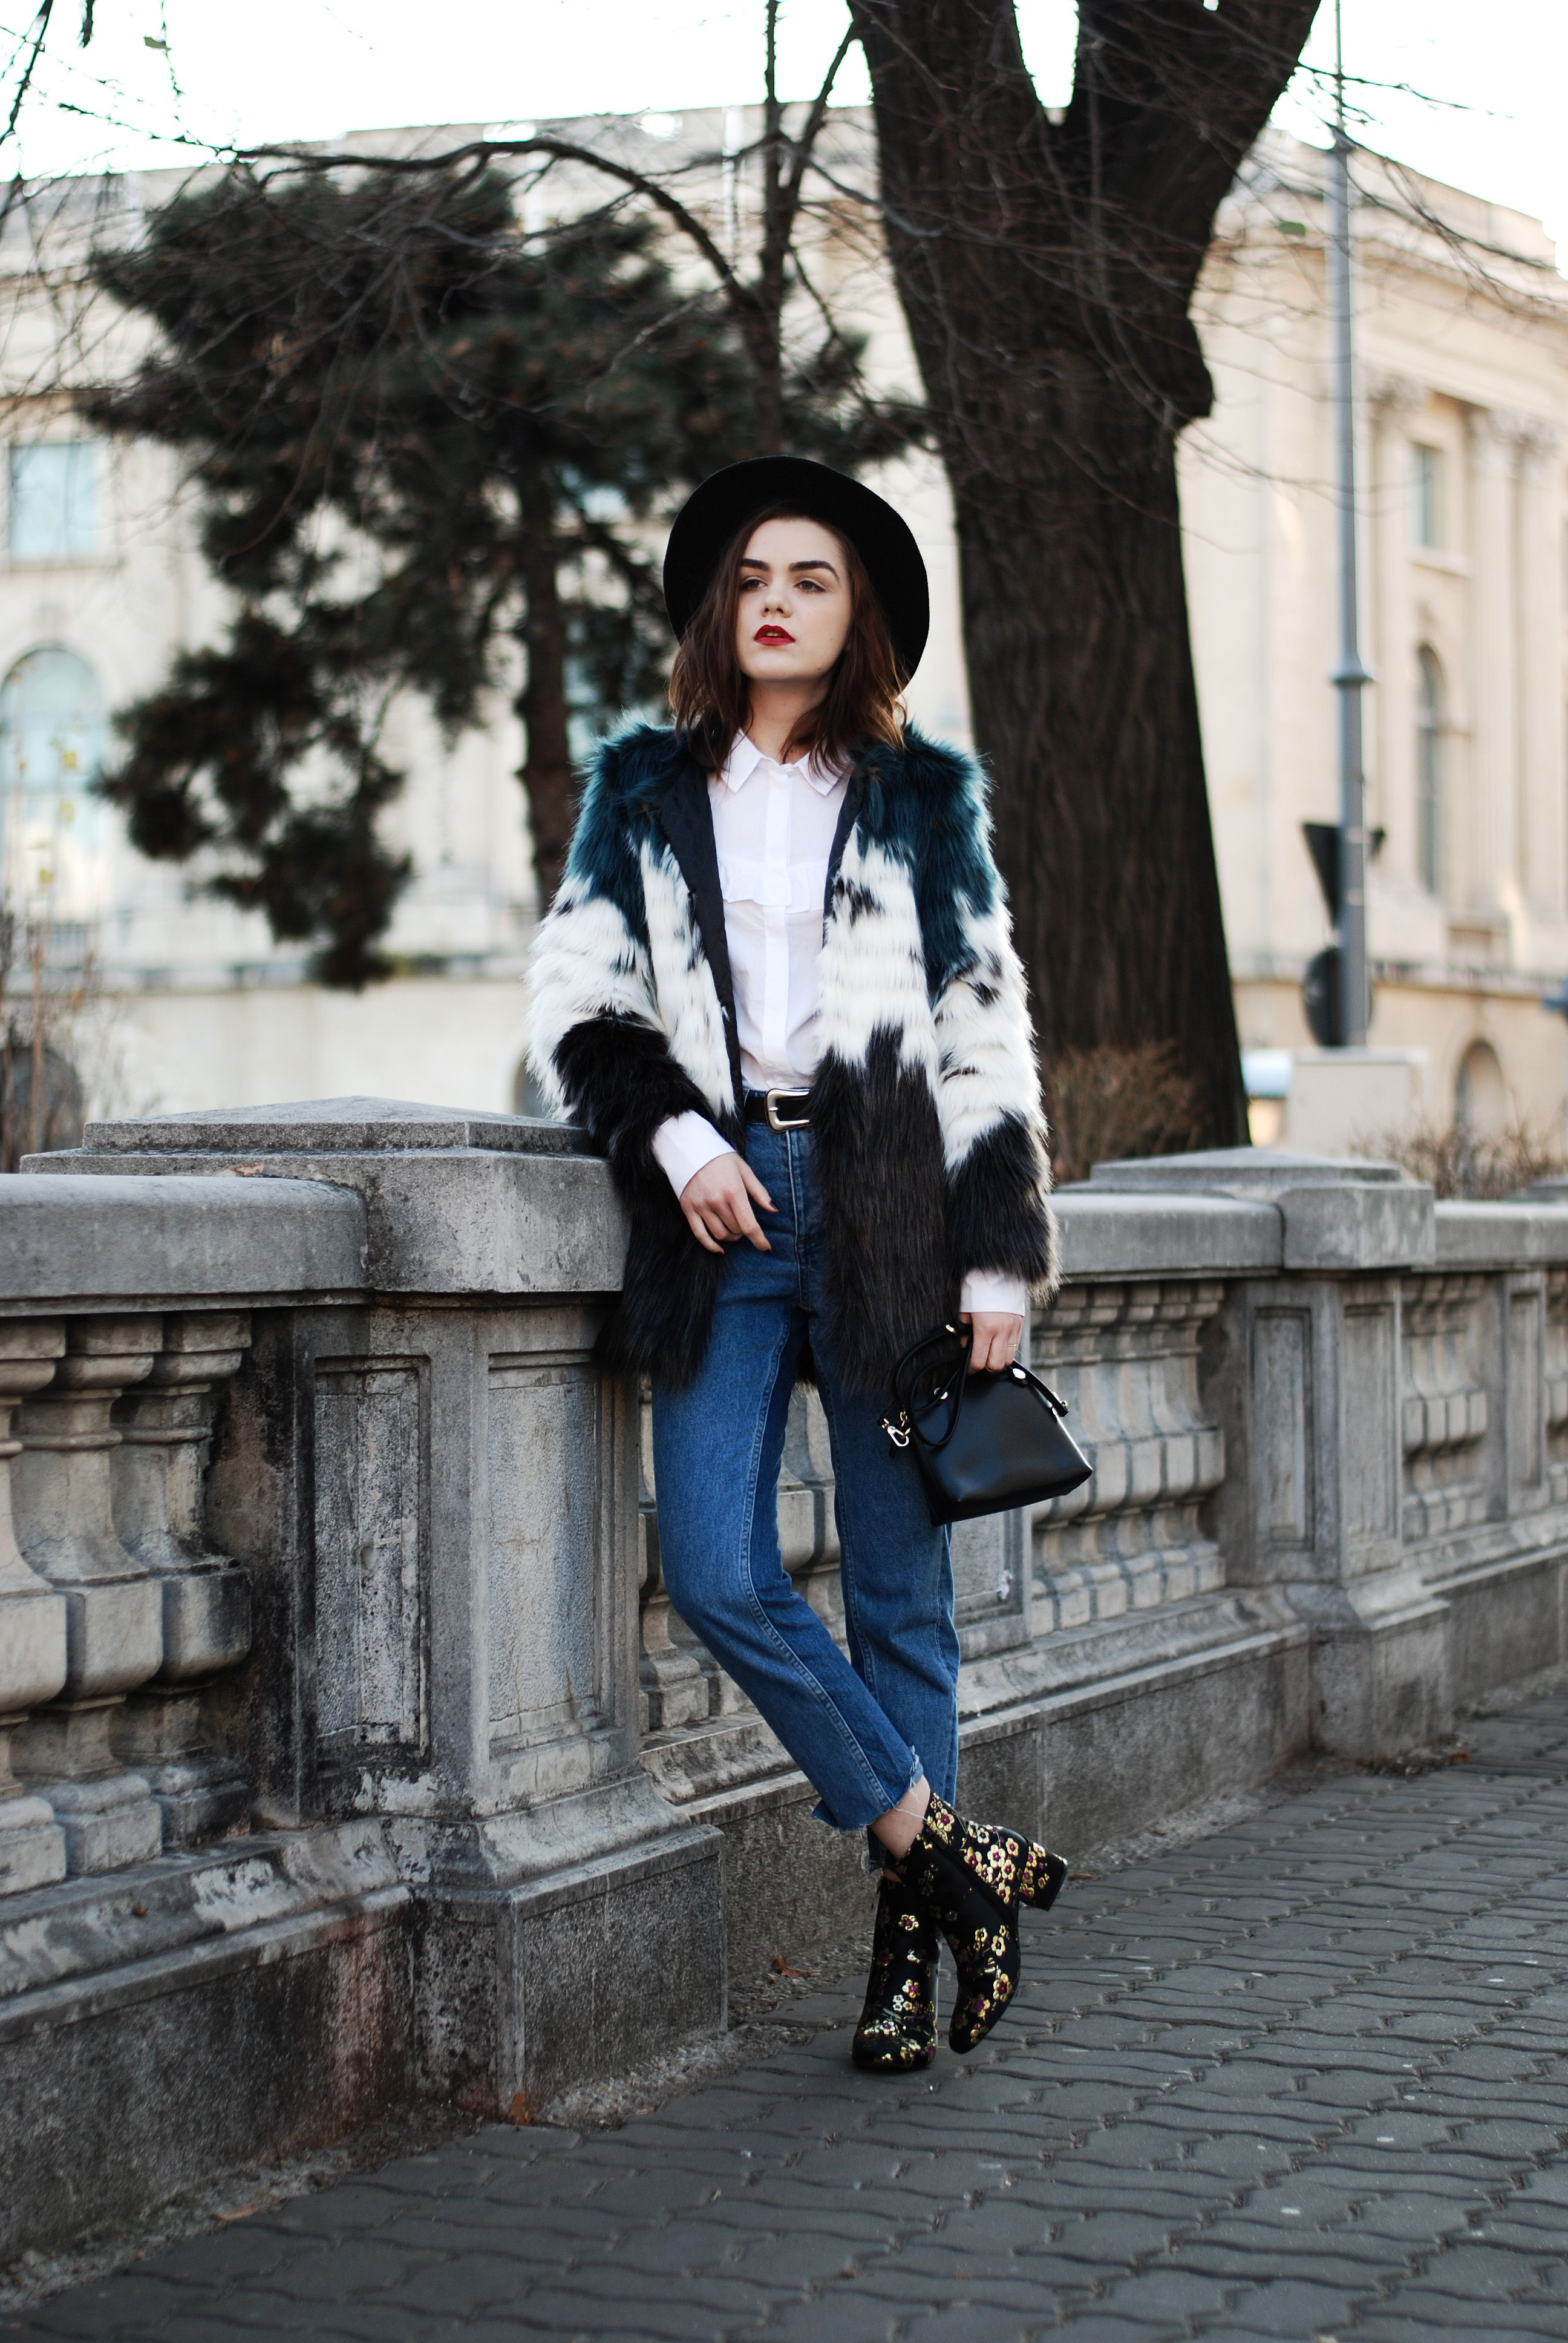 ac2c9303f7 Embroidered ankle boots  the go-to shoes for winter